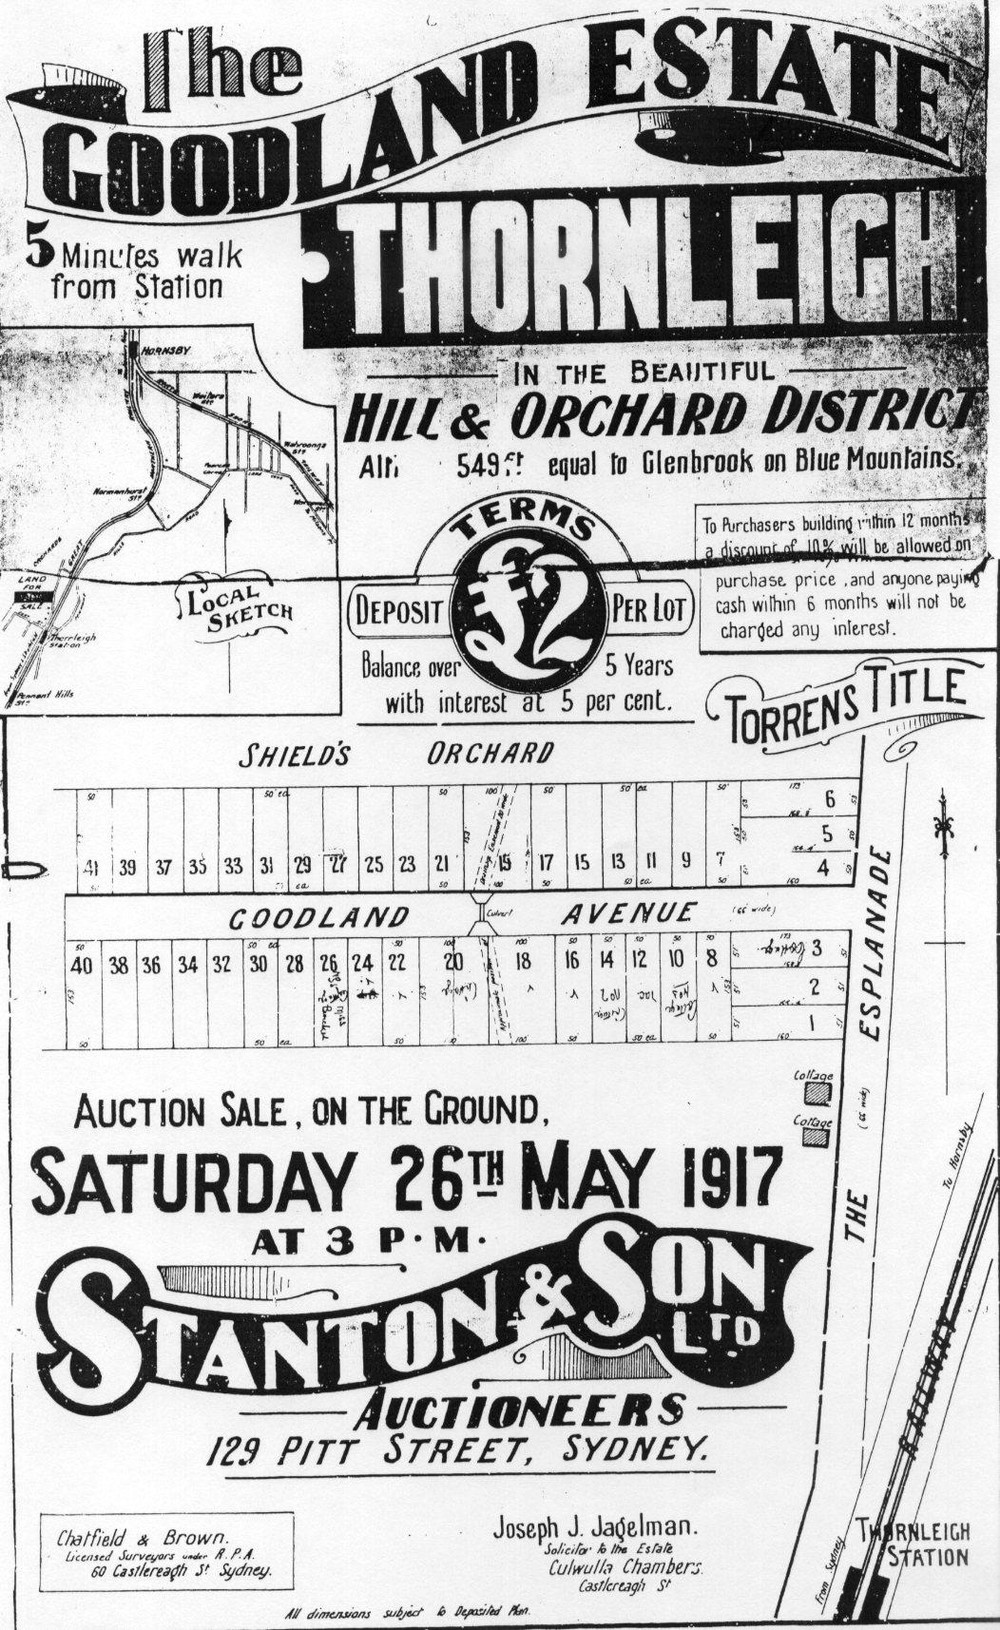 Poster Promoting Goodland Estate subdivision 1917